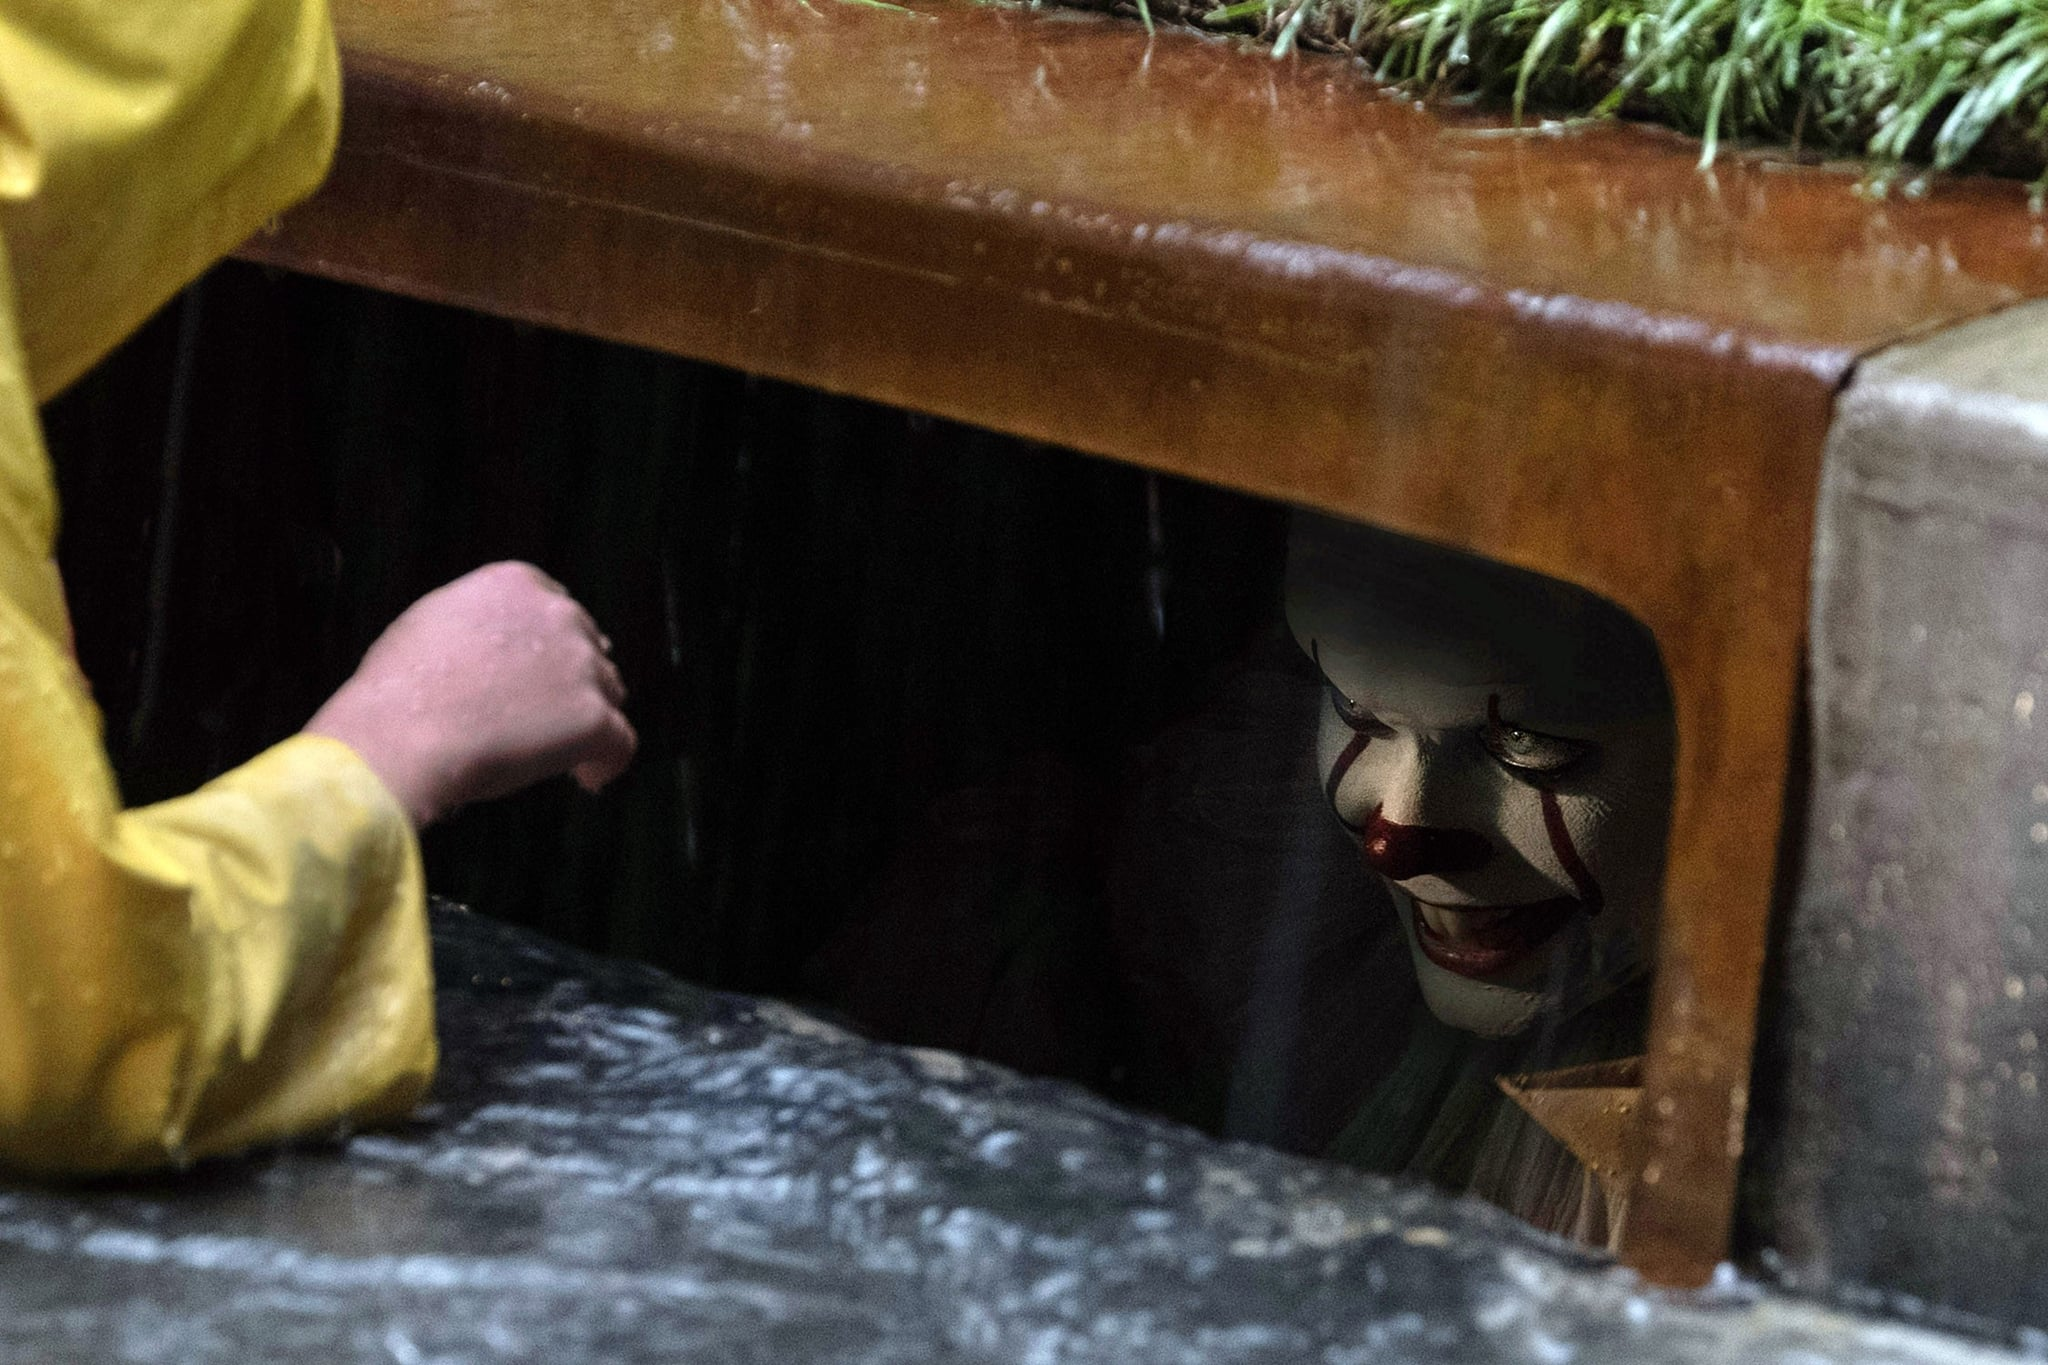 'Bored' teen turns brother into creepy clown from Stephen King's 'It'